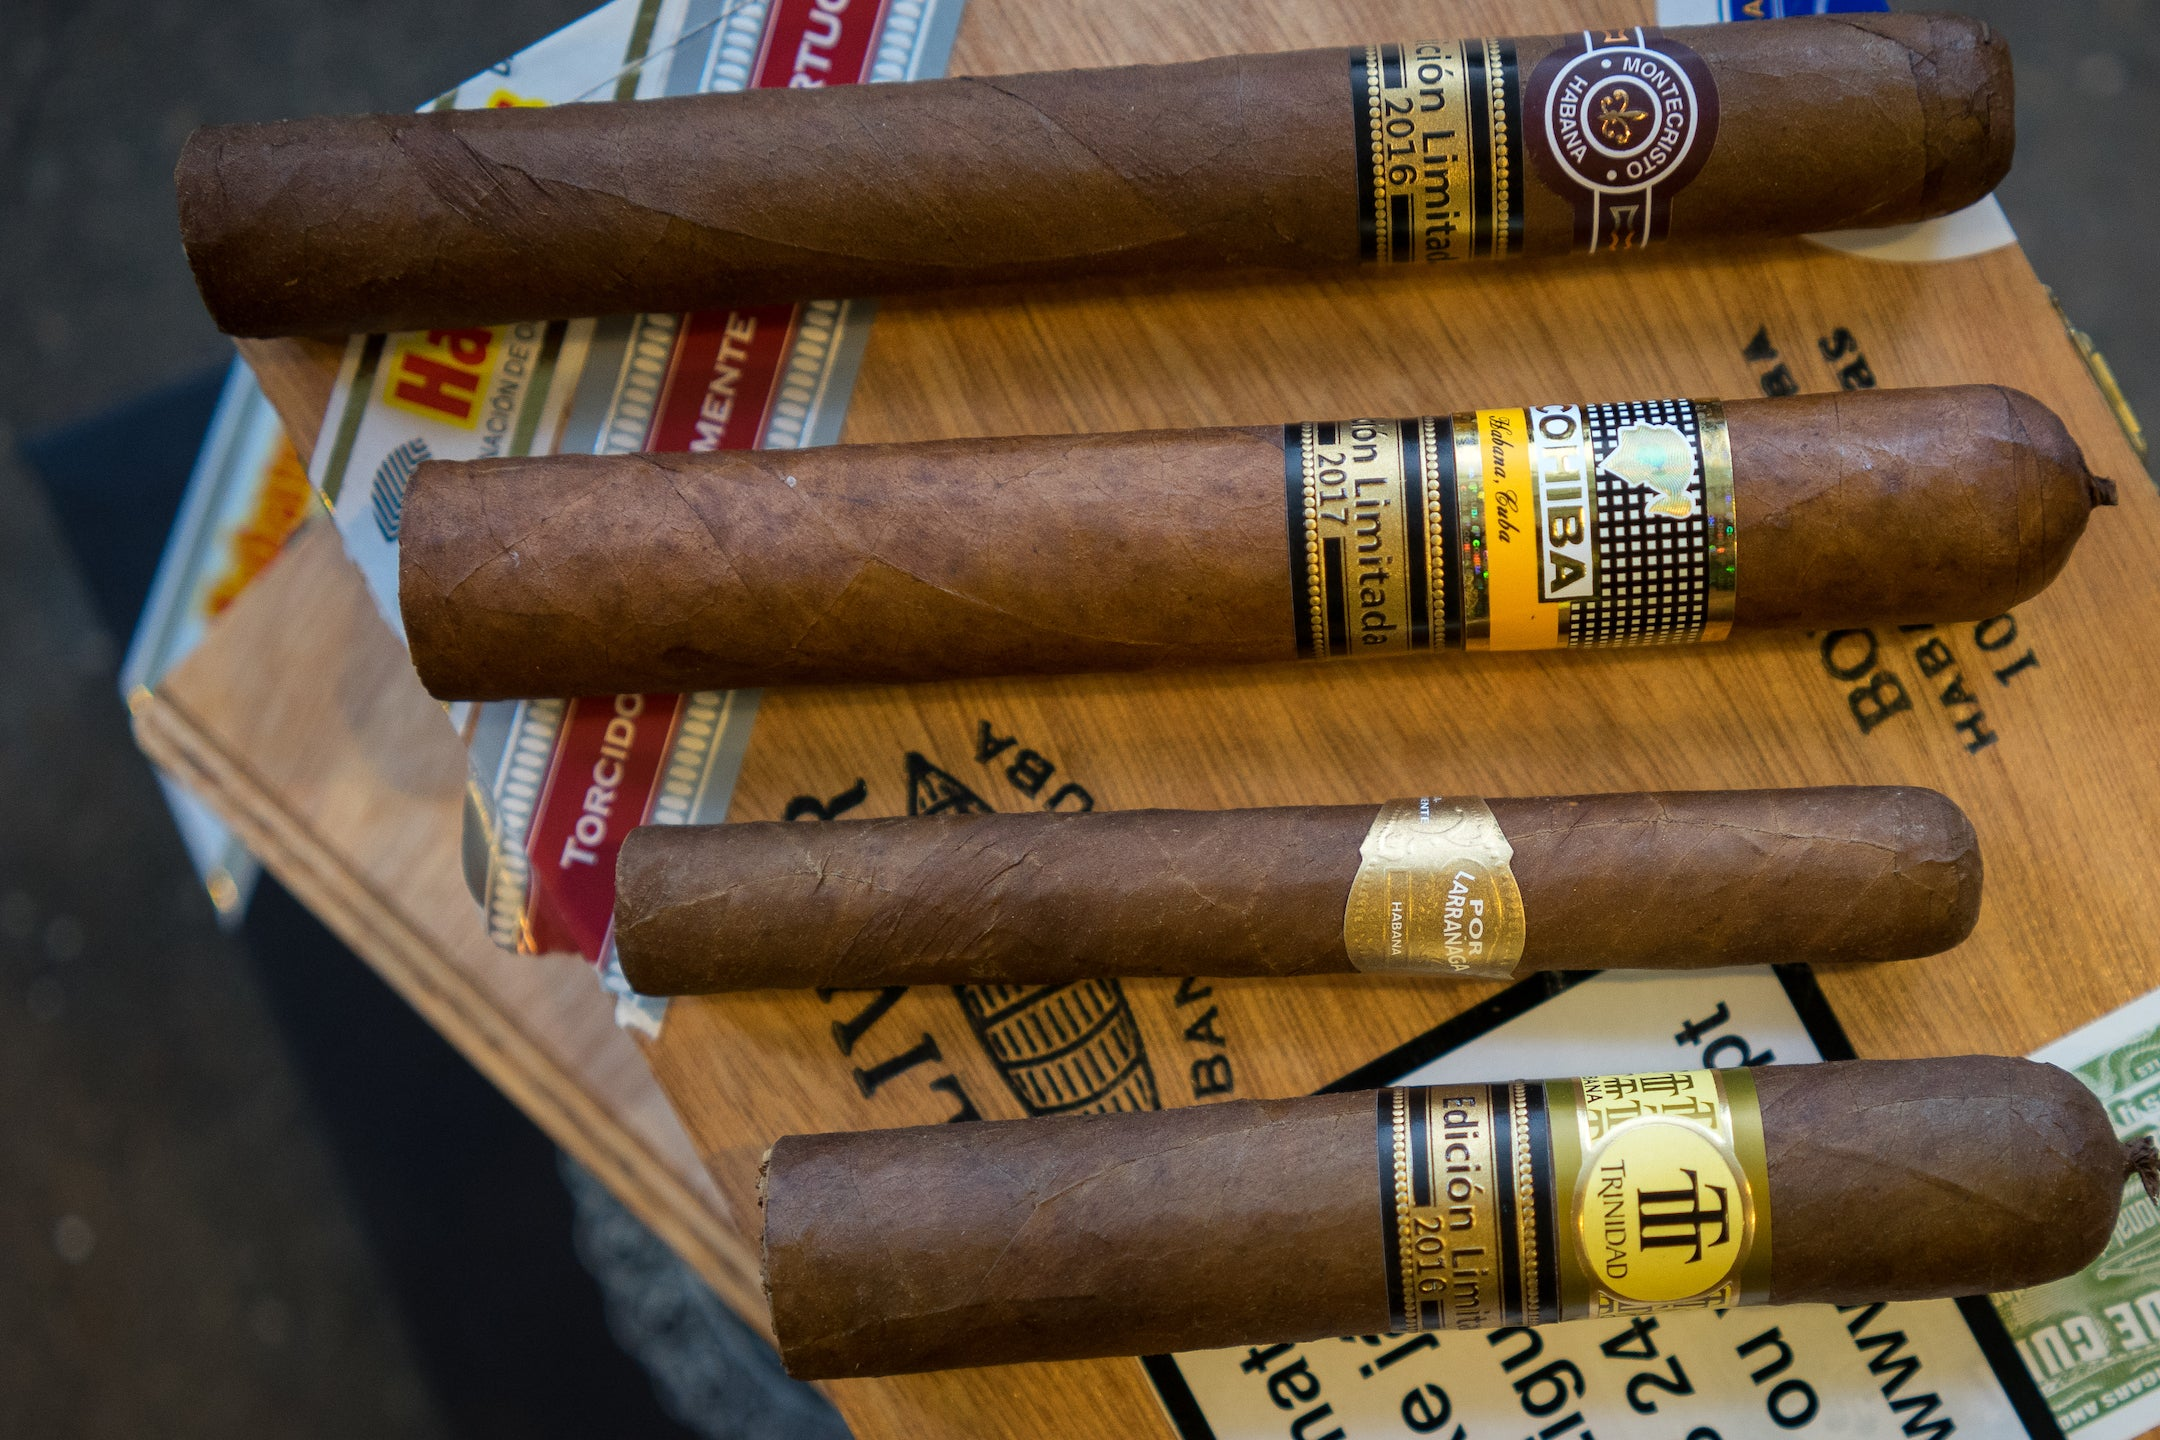 A selection of Limited Edition Trinidad Cuban Cigars.